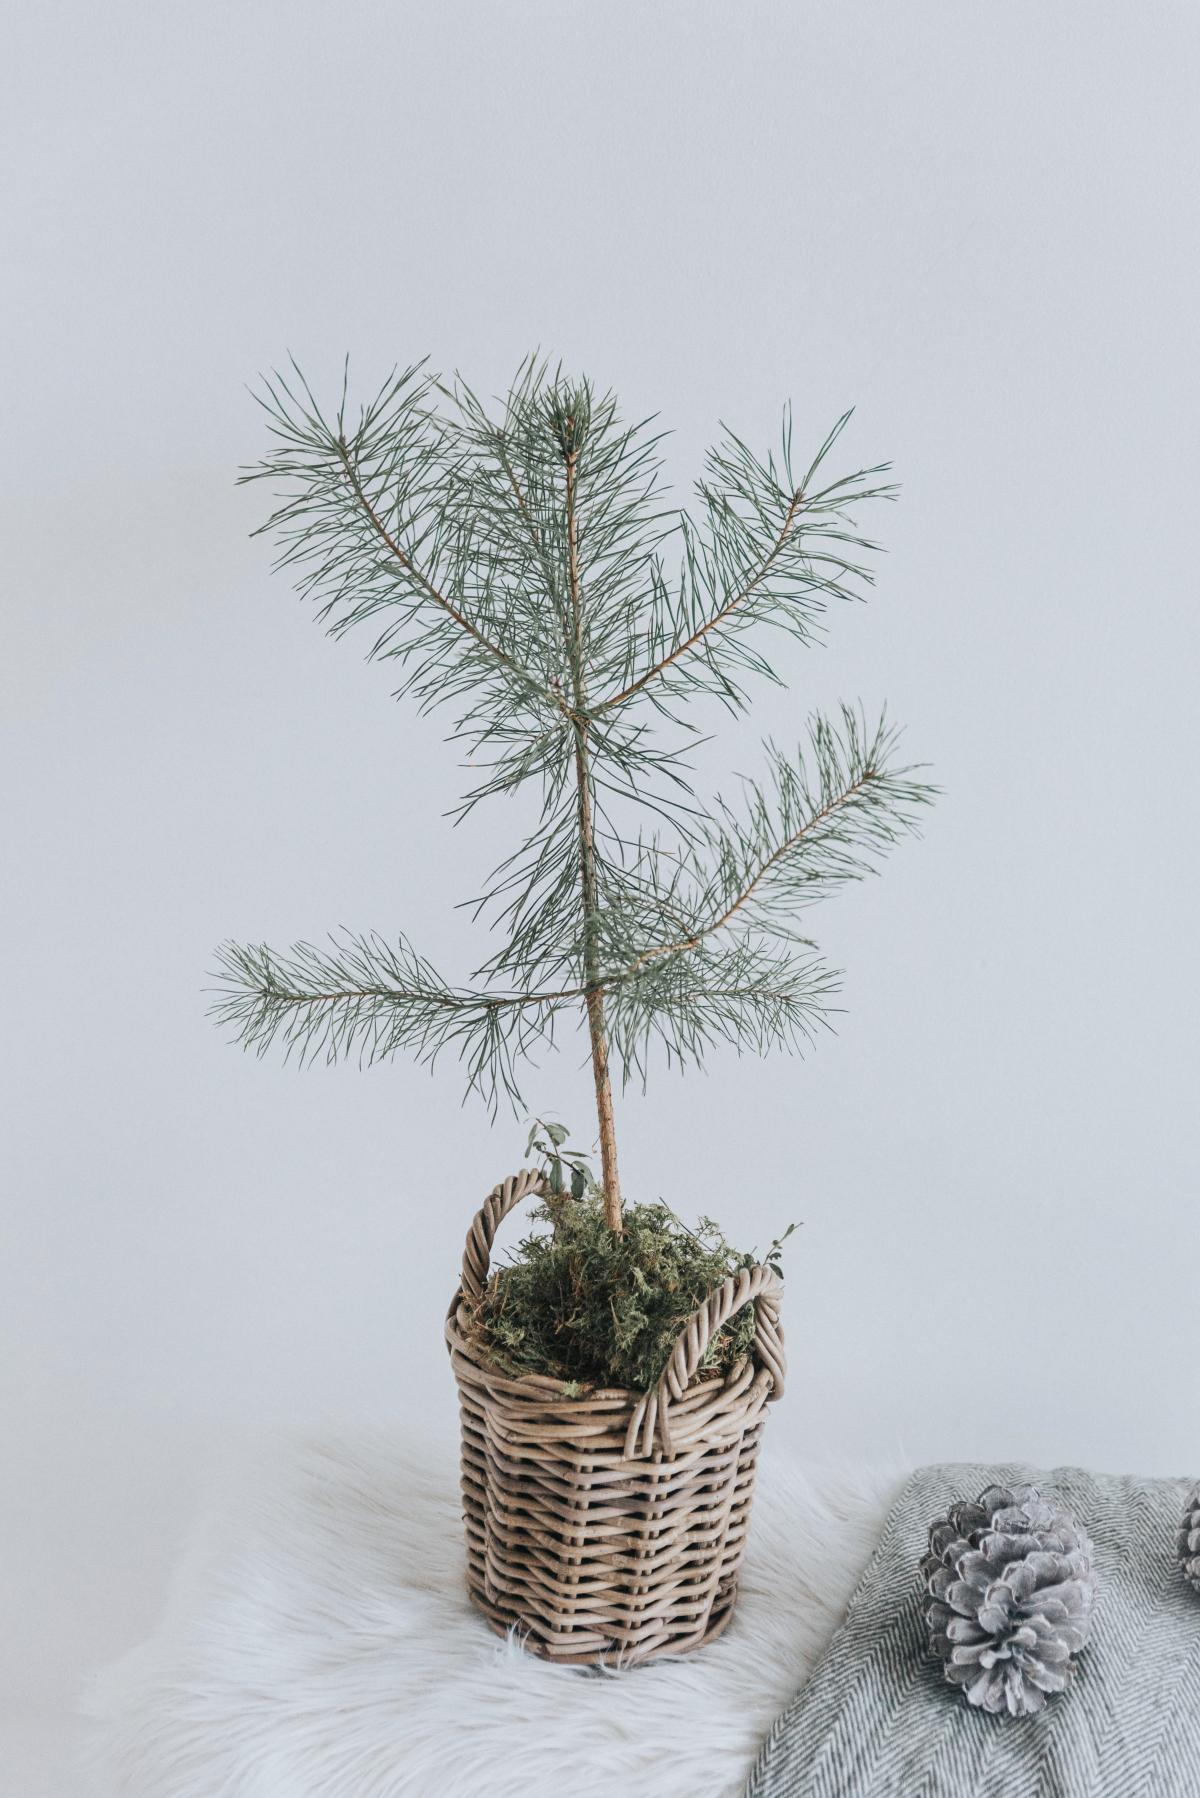 Evergreen Pine Tree #426397